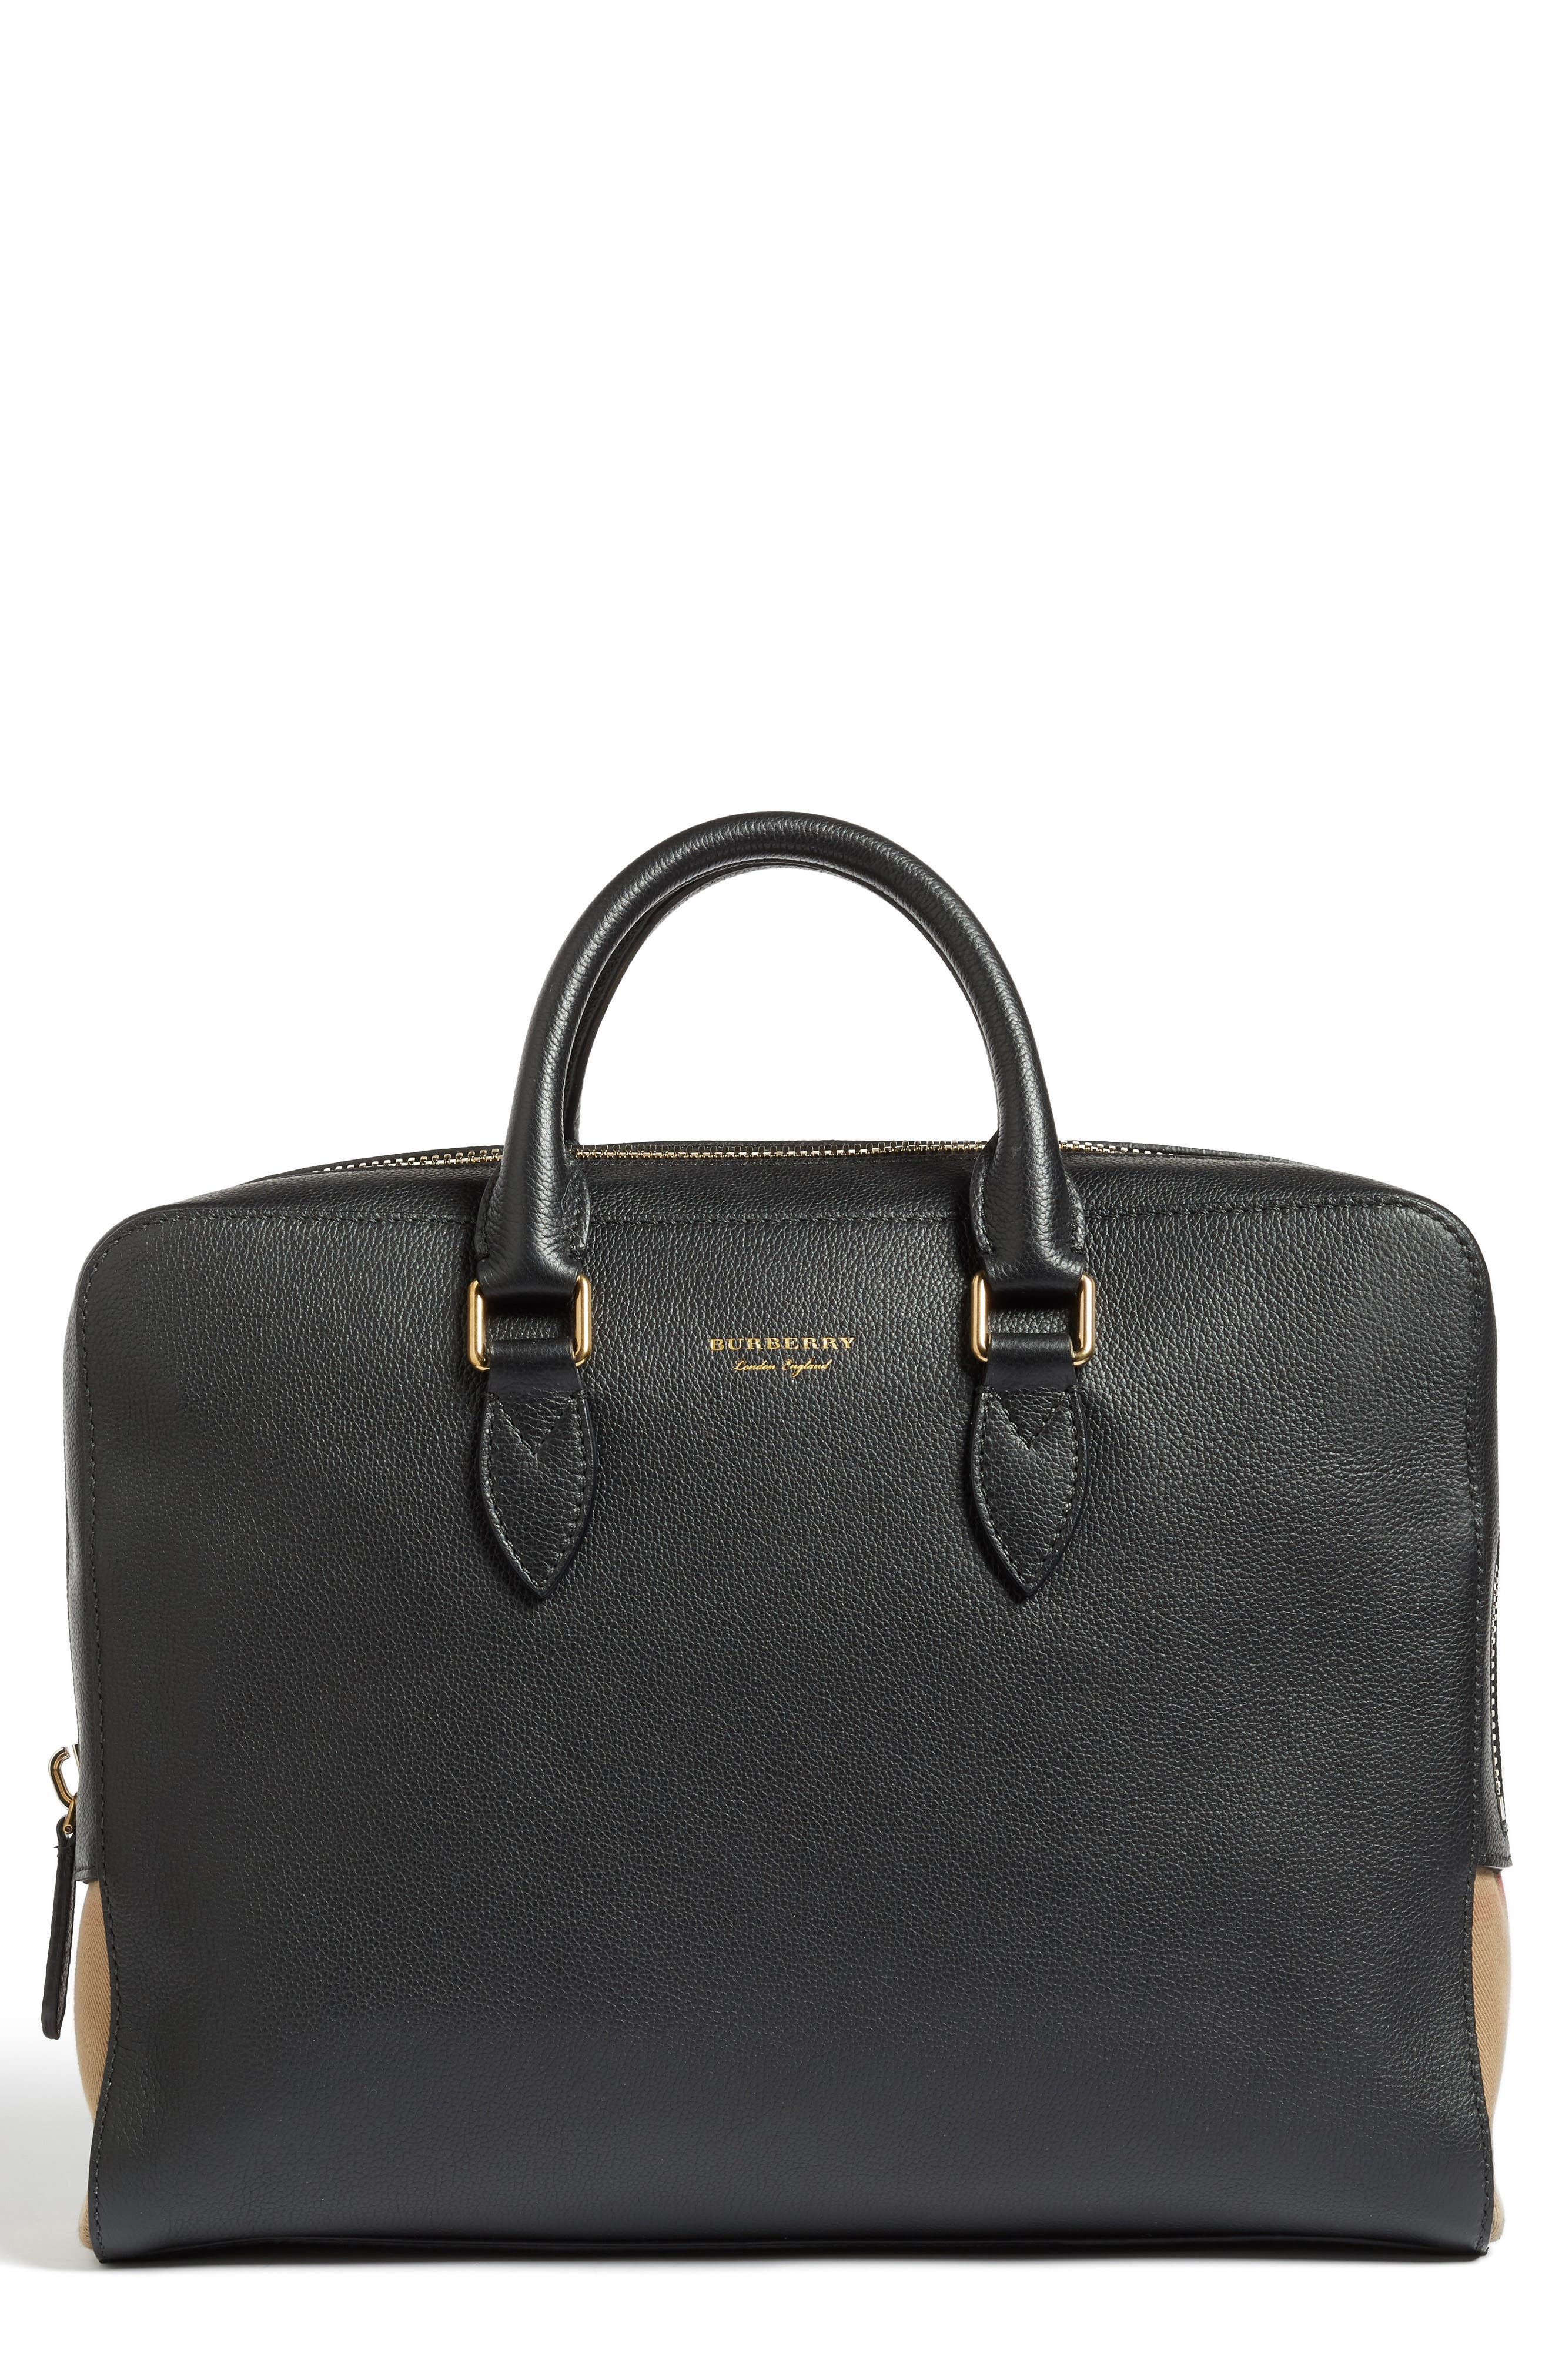 Burberry Horton Leather Briefcase